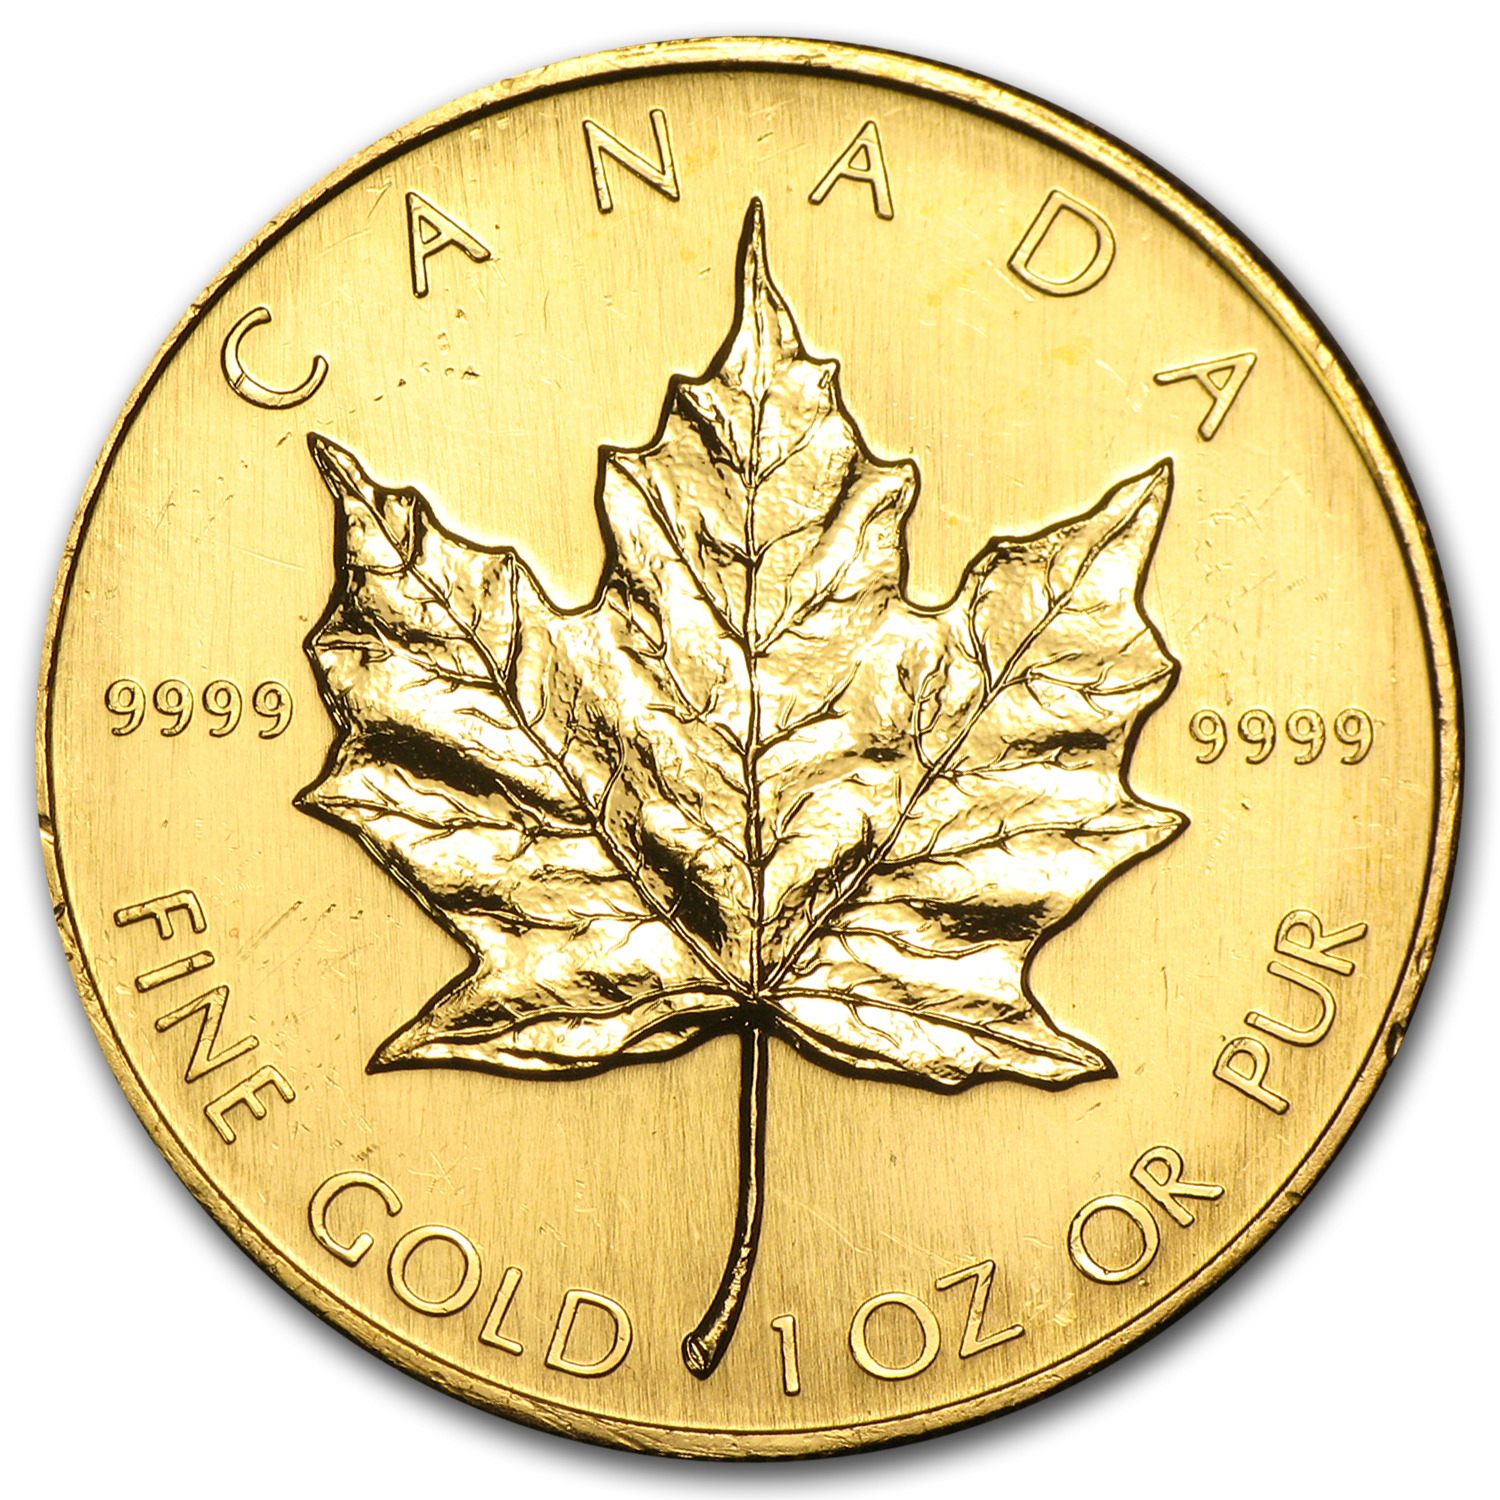 1986 Canada 1 oz Gold Maple Leaf BU